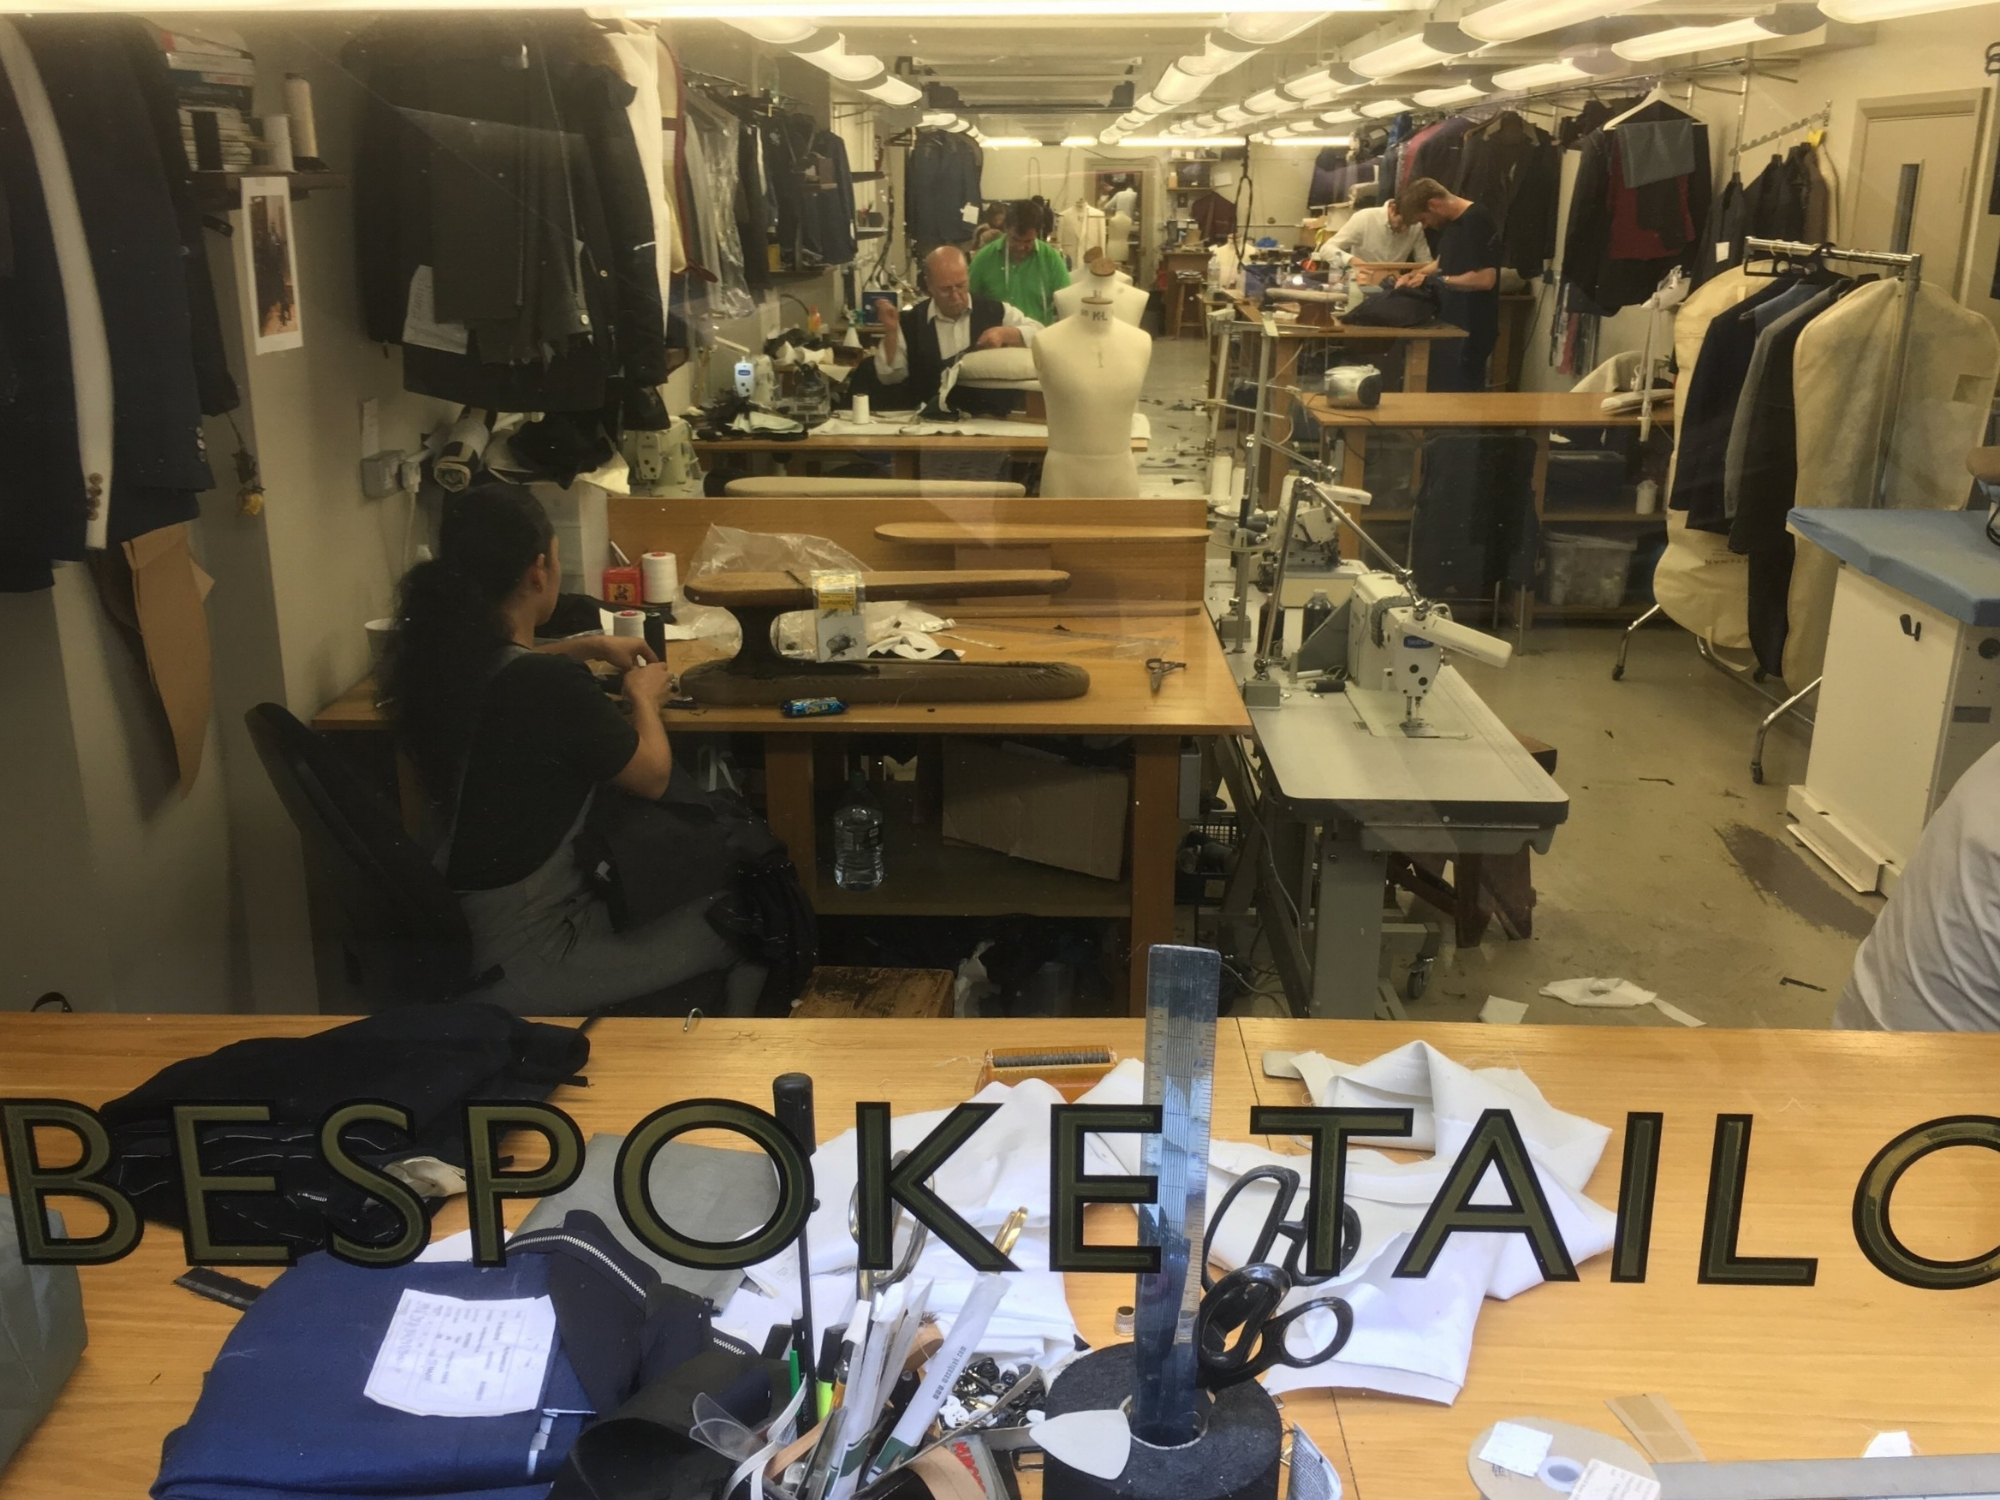 on bespoke tailoring :In June 2008, the Advertising Standards Authority (ASA), a British advertising regulator, ruled that an advertisement describing a suit